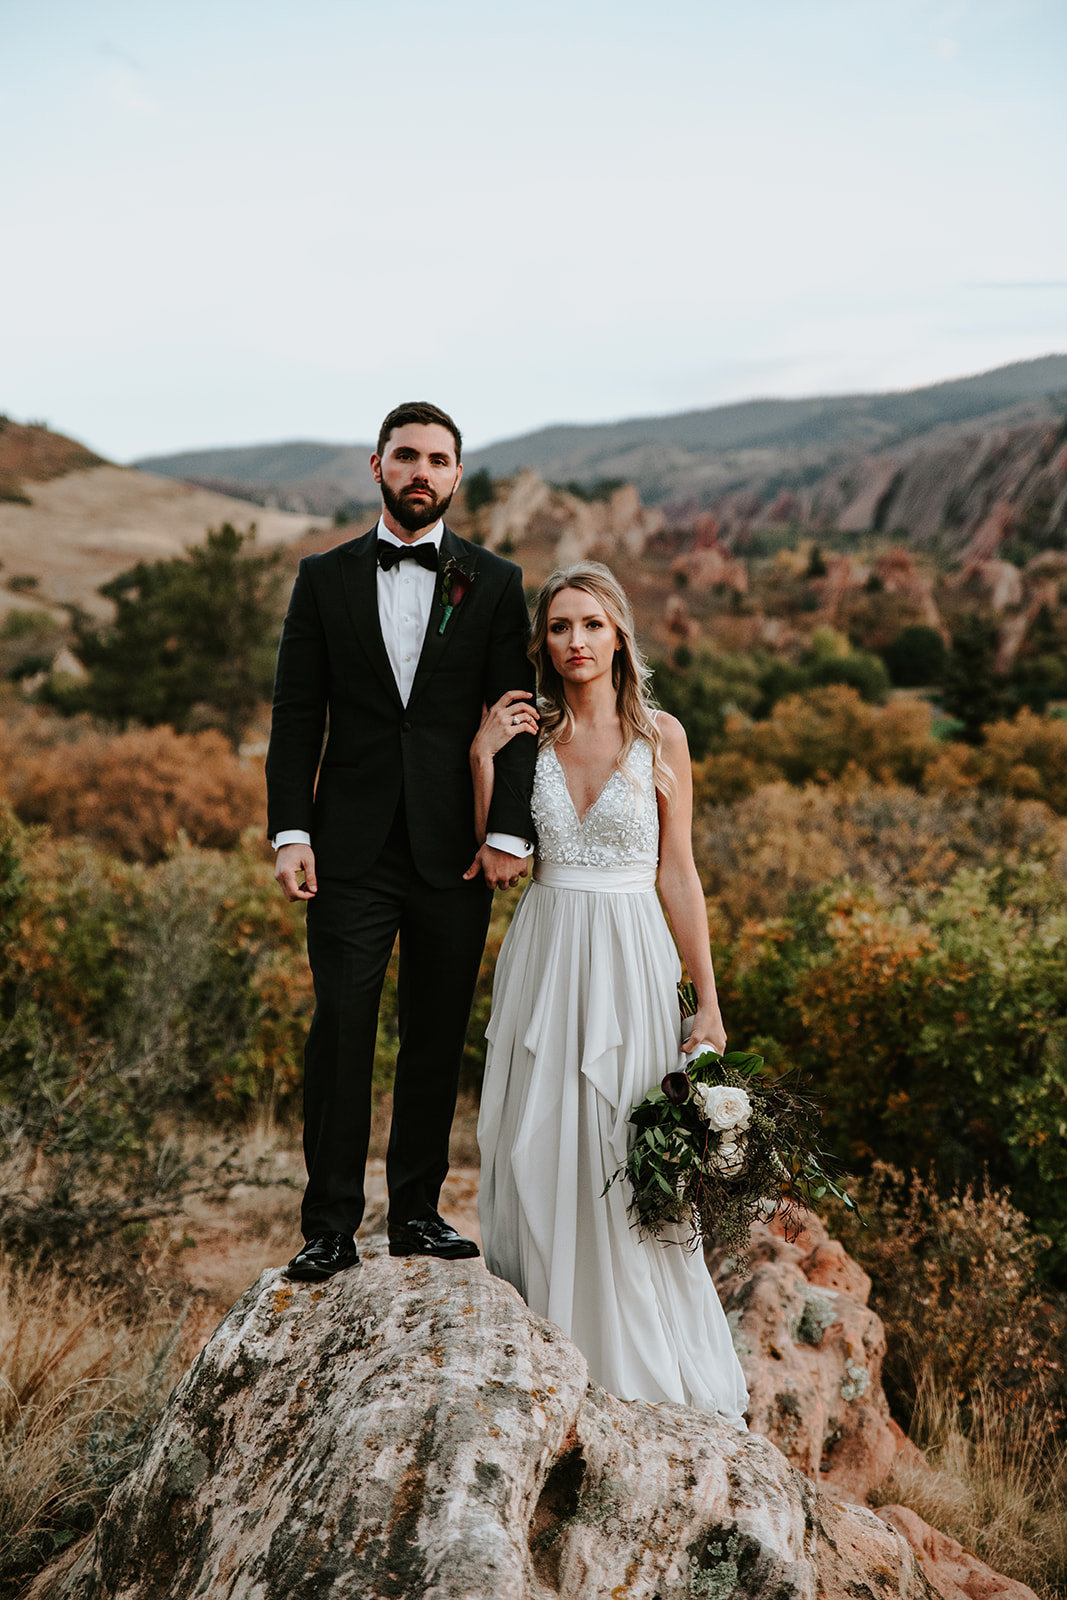 modelesque wedding couple at Arrowhead Golf Club in Littleton Colorado